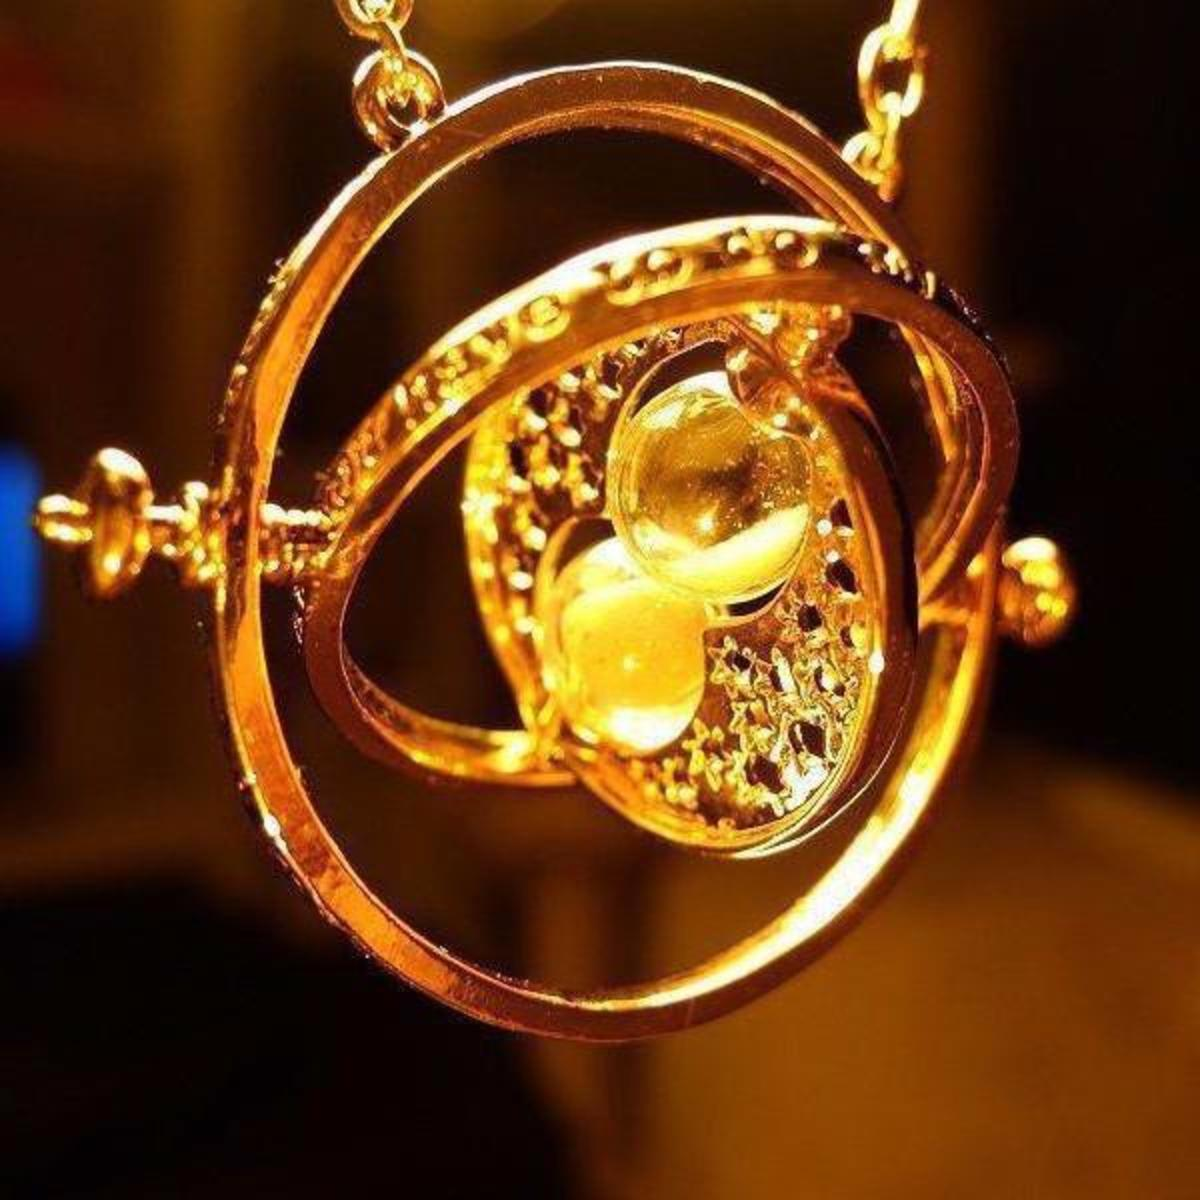 A Time-Turner produces a similar effect to the Hour-Reversal Charm